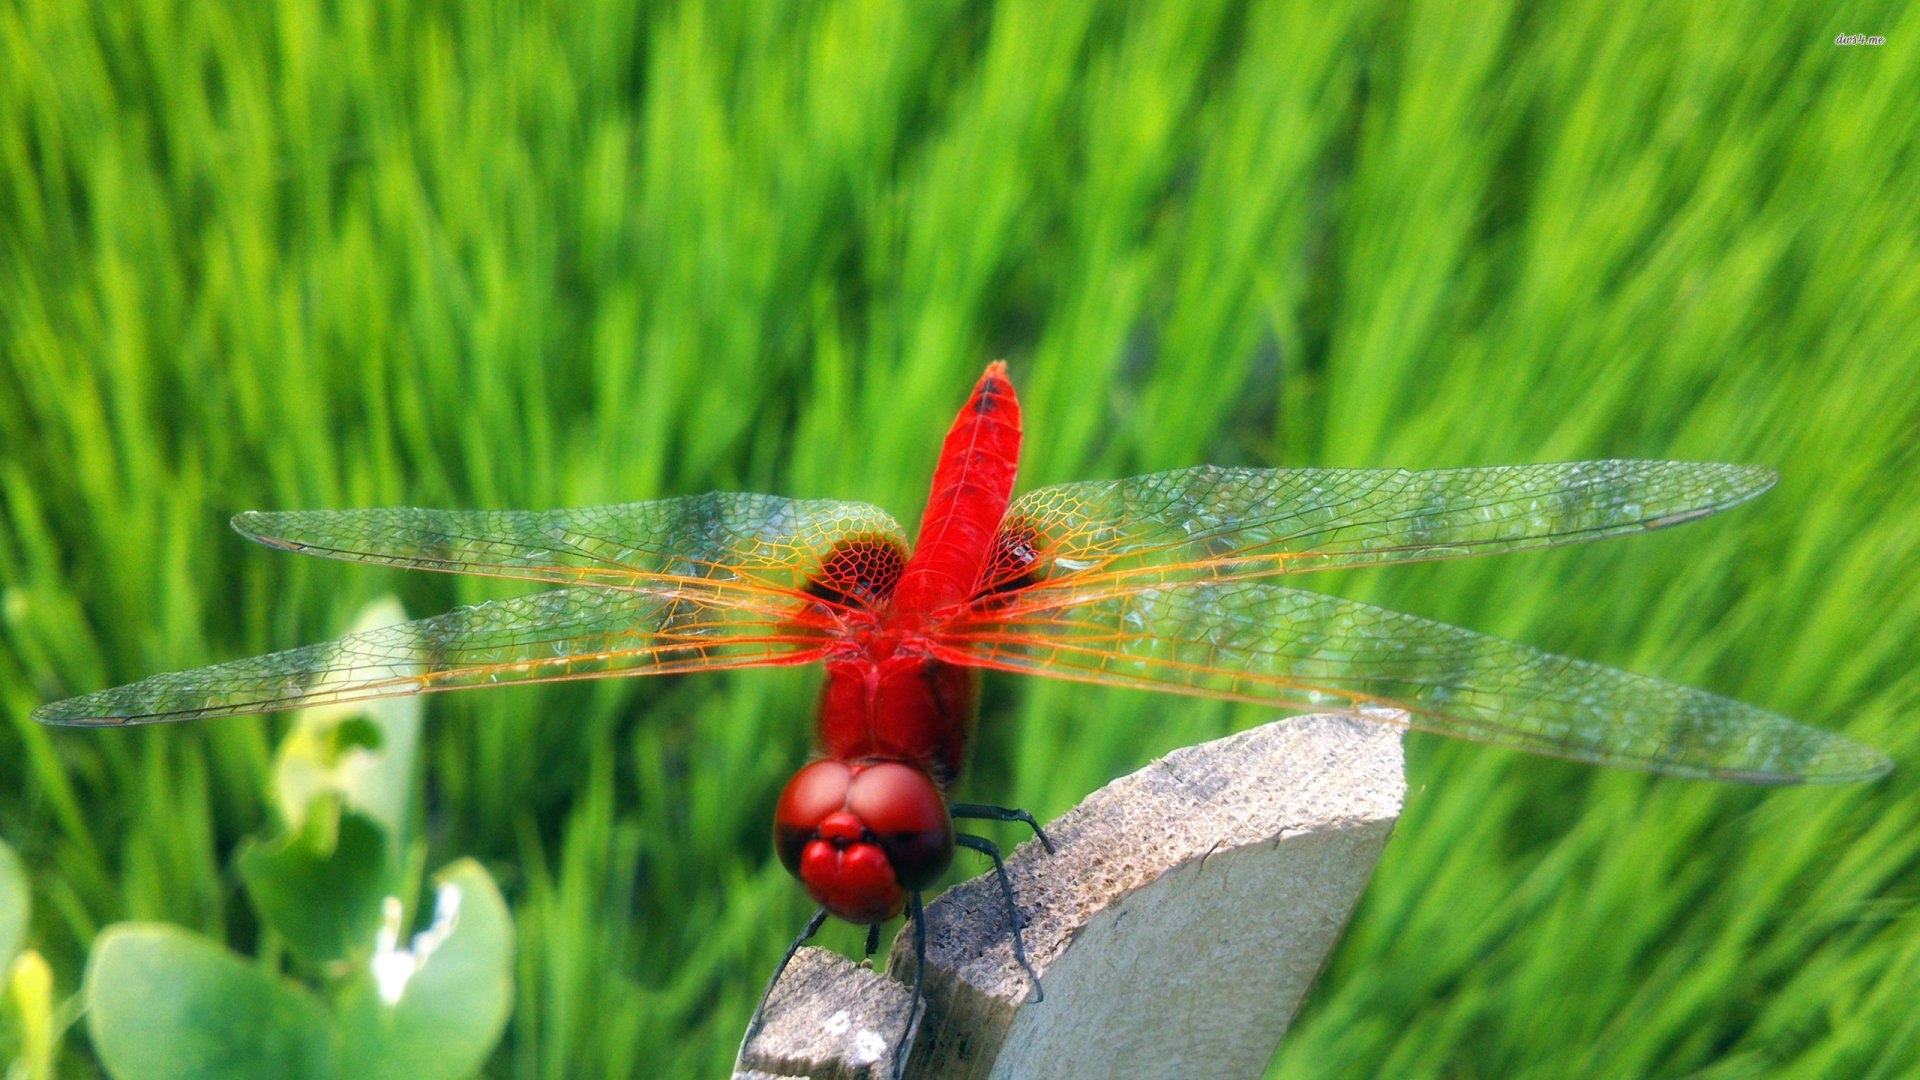 Animal - Dragonfly  Wallpaper